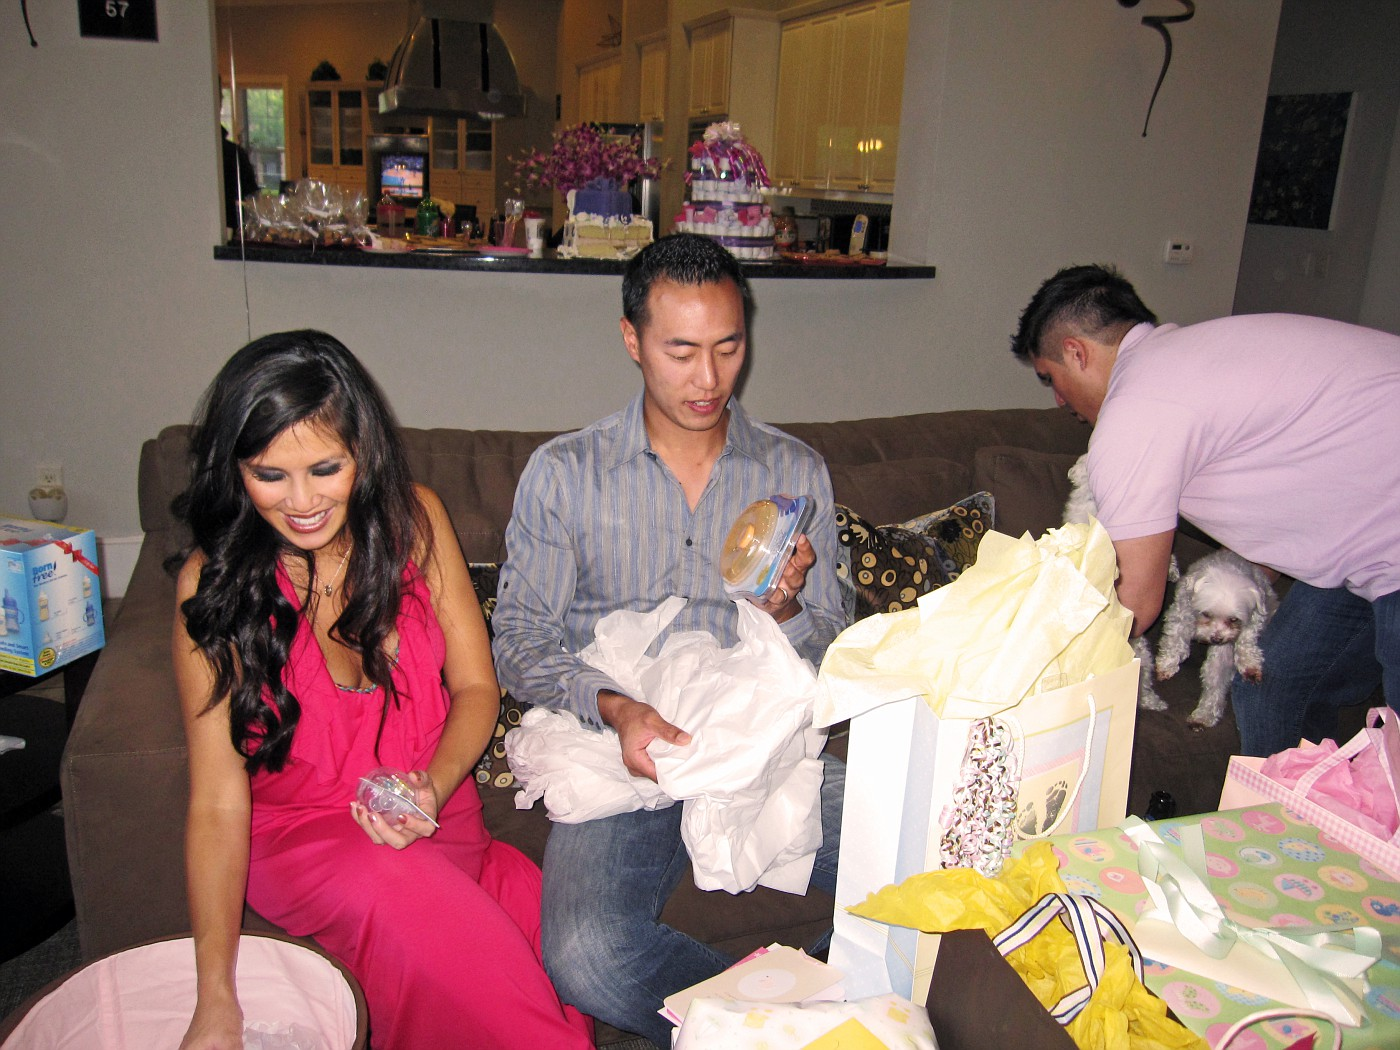 Our baby shower photo 16